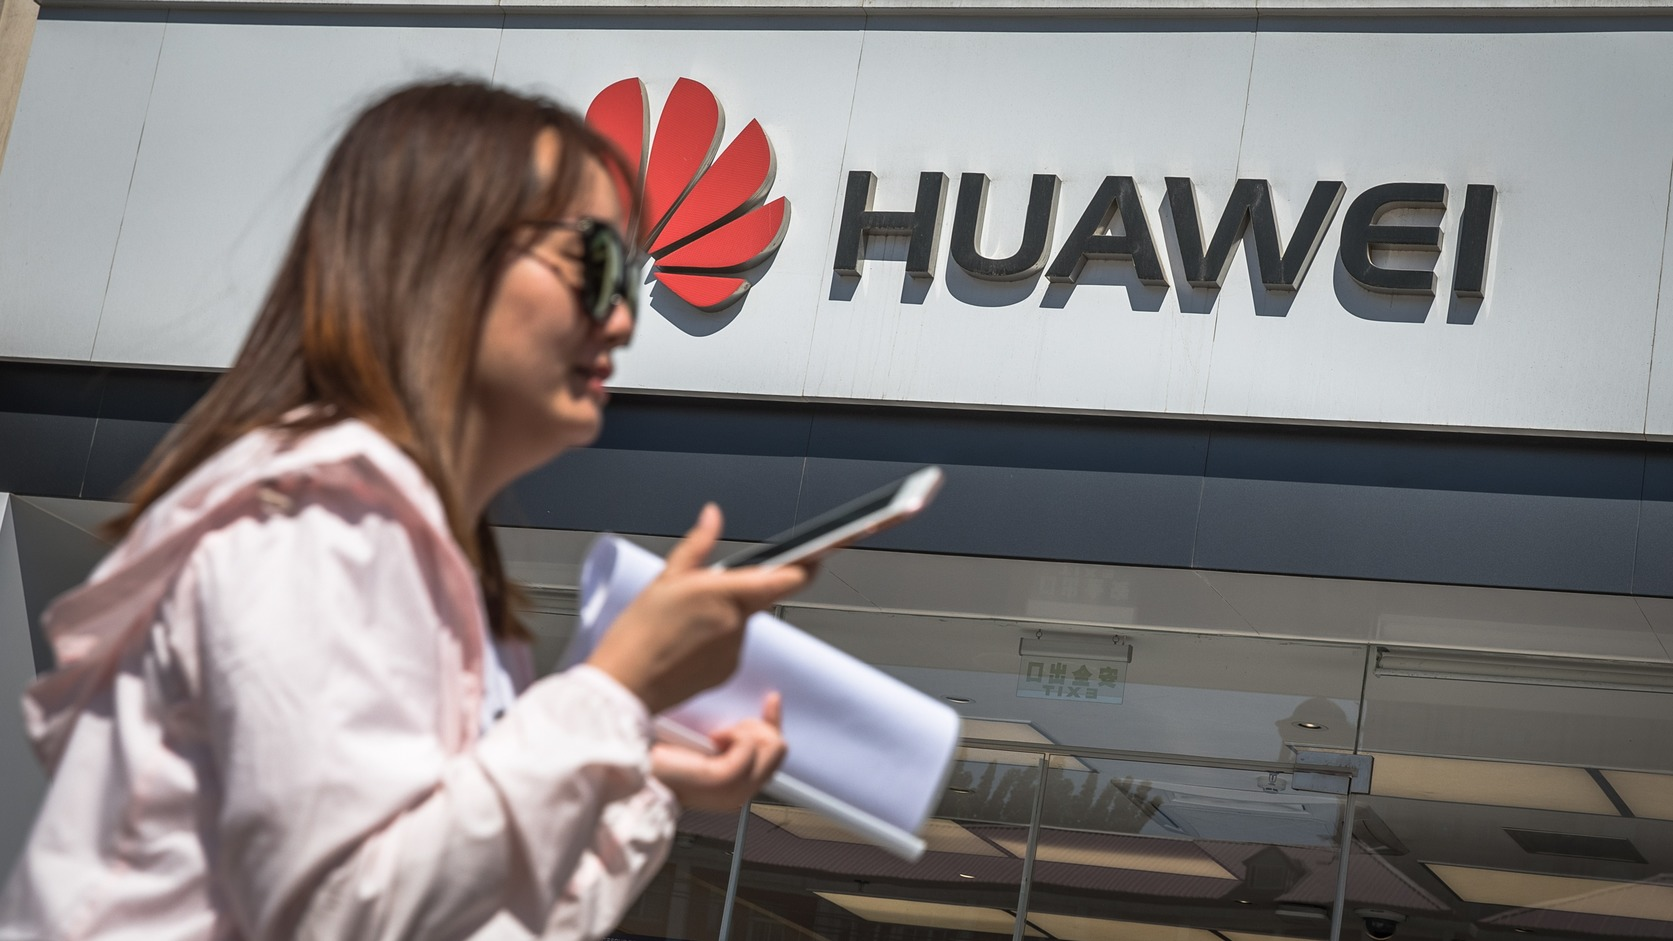 epa07586407 A woman walks past a Huawei store in Beijing, China, 20 May 2019. According to media reports on 20 May 2019, the US based multinational technology company Google halted business with Huawei in the wake of the Trump administration adding the Chinese telecommunication company to a trade blacklist over national security concerns. Huawei will lose access to updates for the Android operating system.  EPA/ROMAN PILIPEY